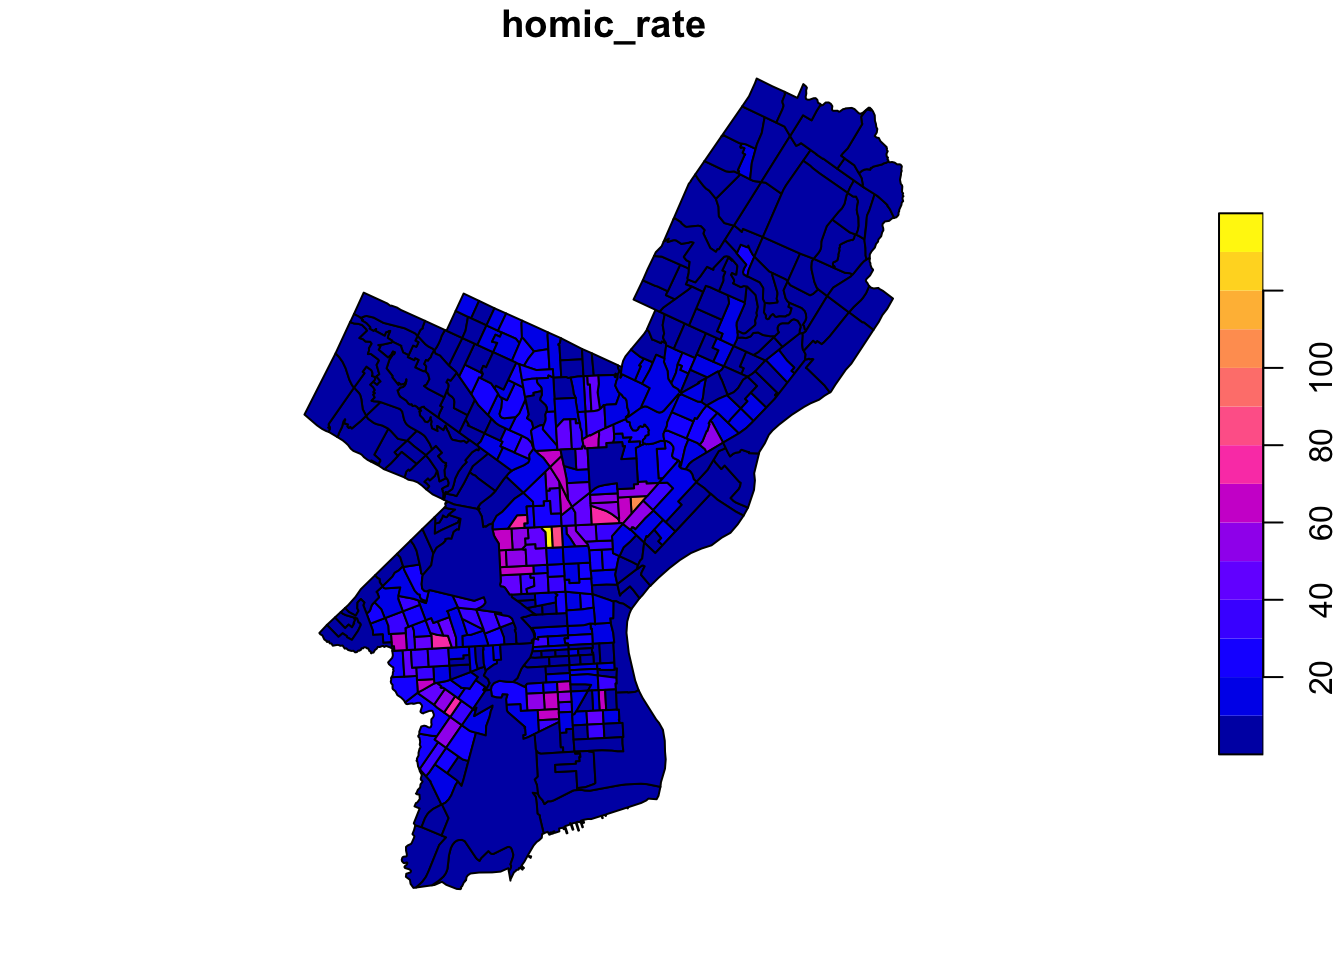 Chapter 3 Making Maps in R | Using Spatial Data with R